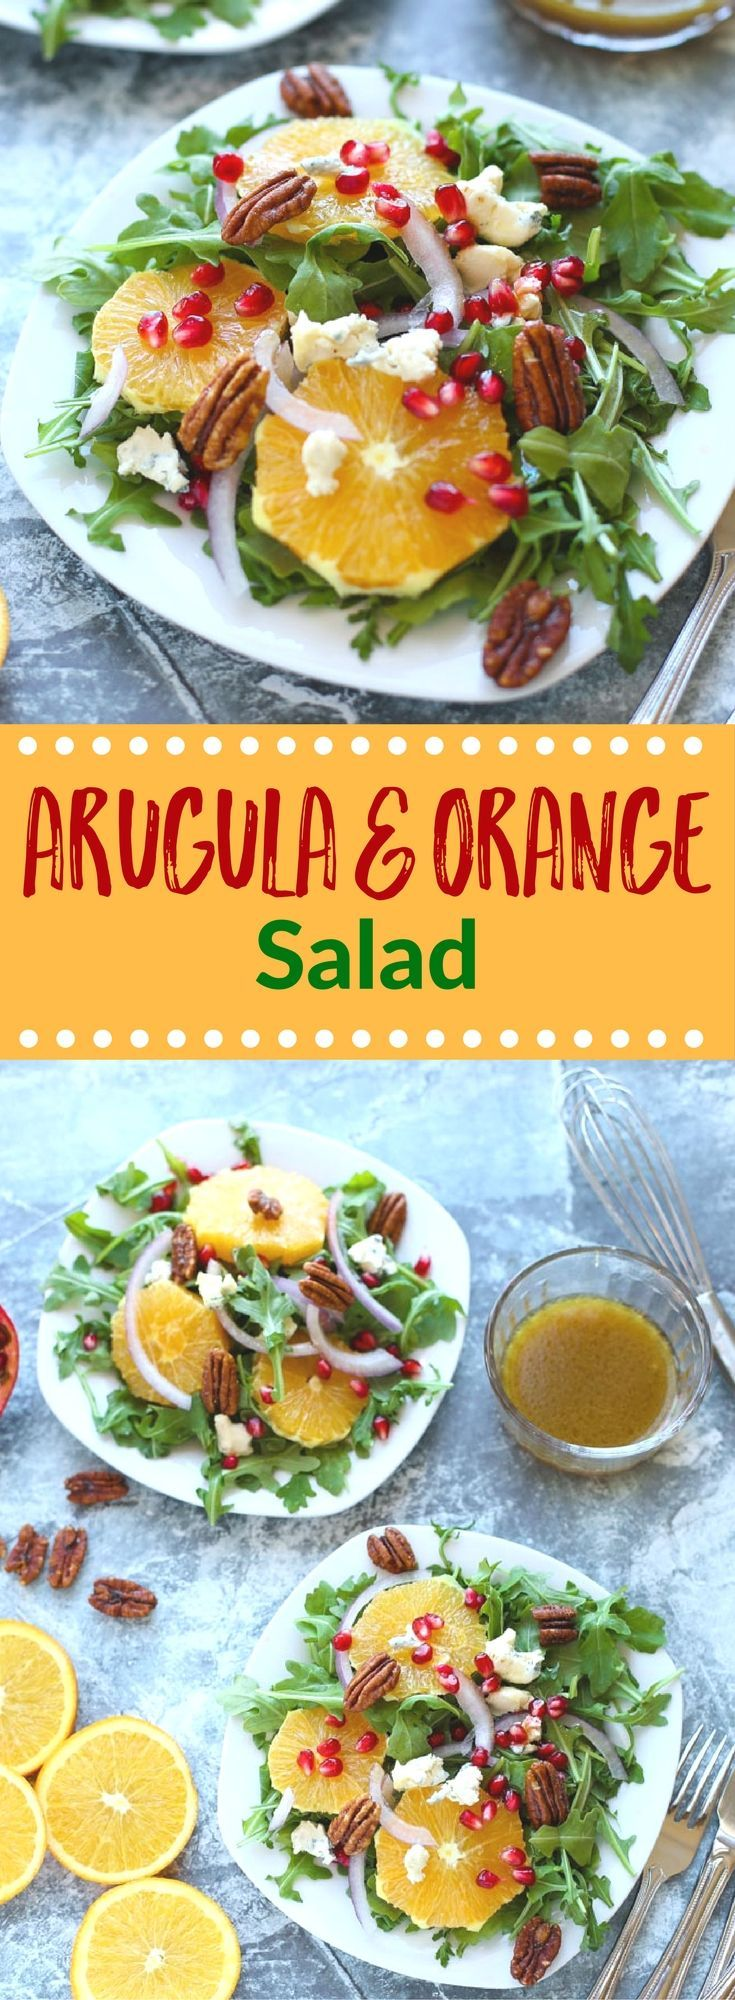 This Arugula and Orange Salad is filled with so many seasonal goodies! Sliced oranges, pomegranate seeds, red onion, and blue cheese topped with a simple sweet dressing. It's sure to be a hit on your holiday table! {gluten free} via @lkkelly98